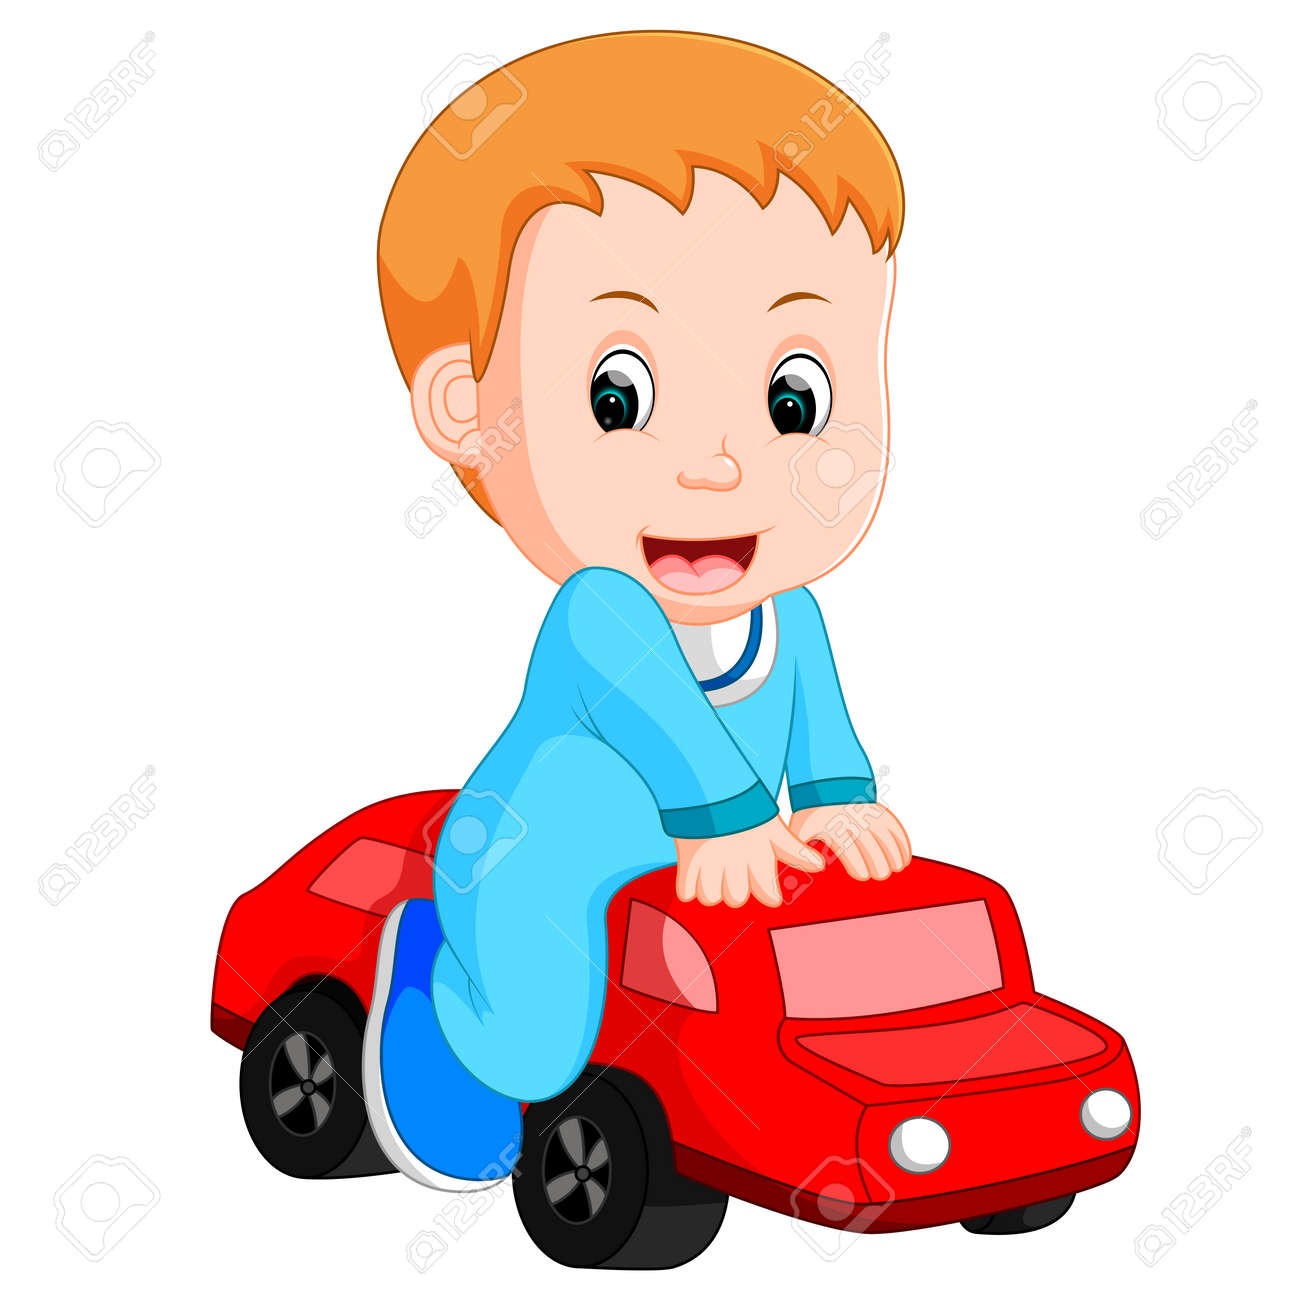 Baby Boy Plays With A Toy Car Royalty Free Cliparts Vectors And